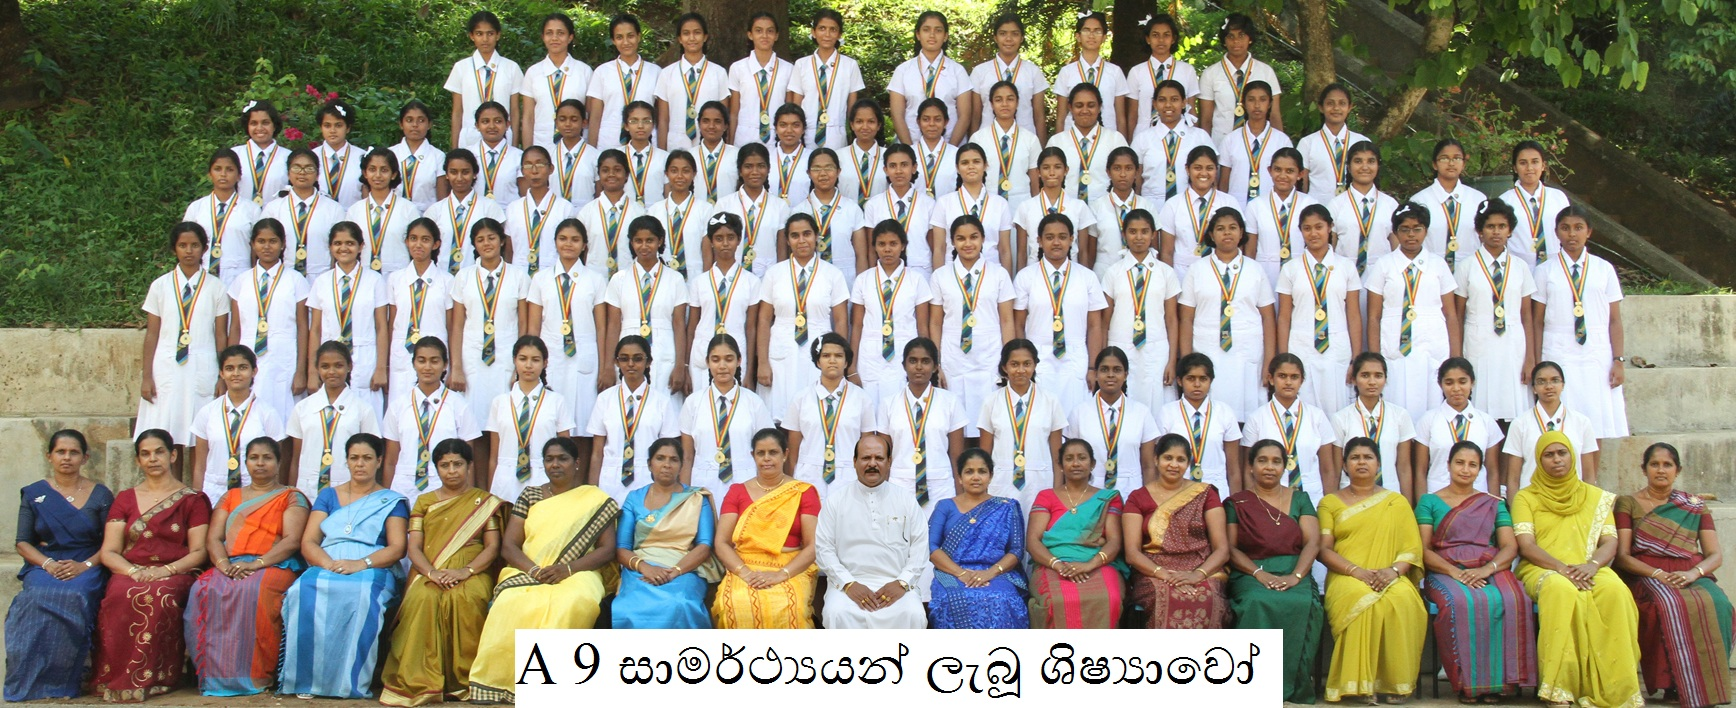 NIDHUSARA 15' – Girls' High School, Kandy